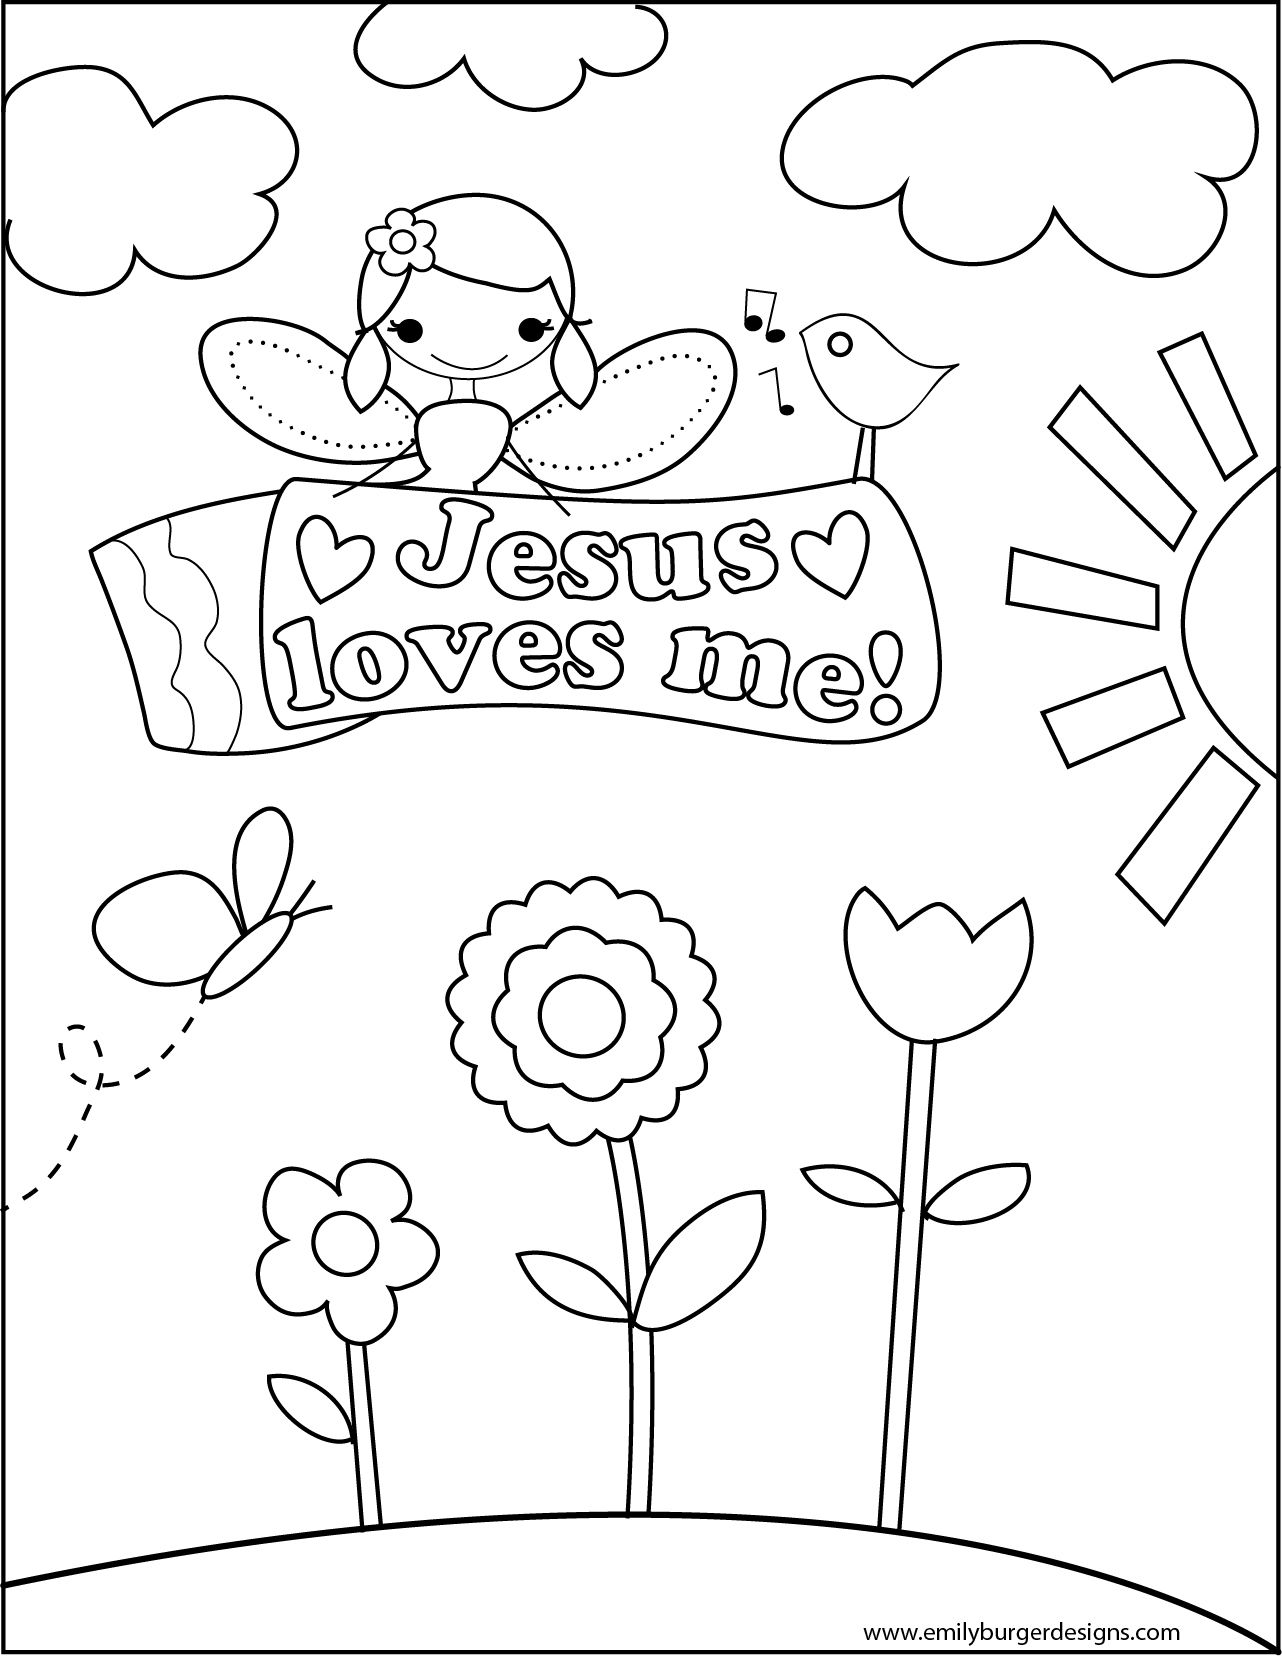 Jesus Loves Me Coloring Pages Jesus Coloring Pages Sunday School Coloring Pages Love Coloring Pages